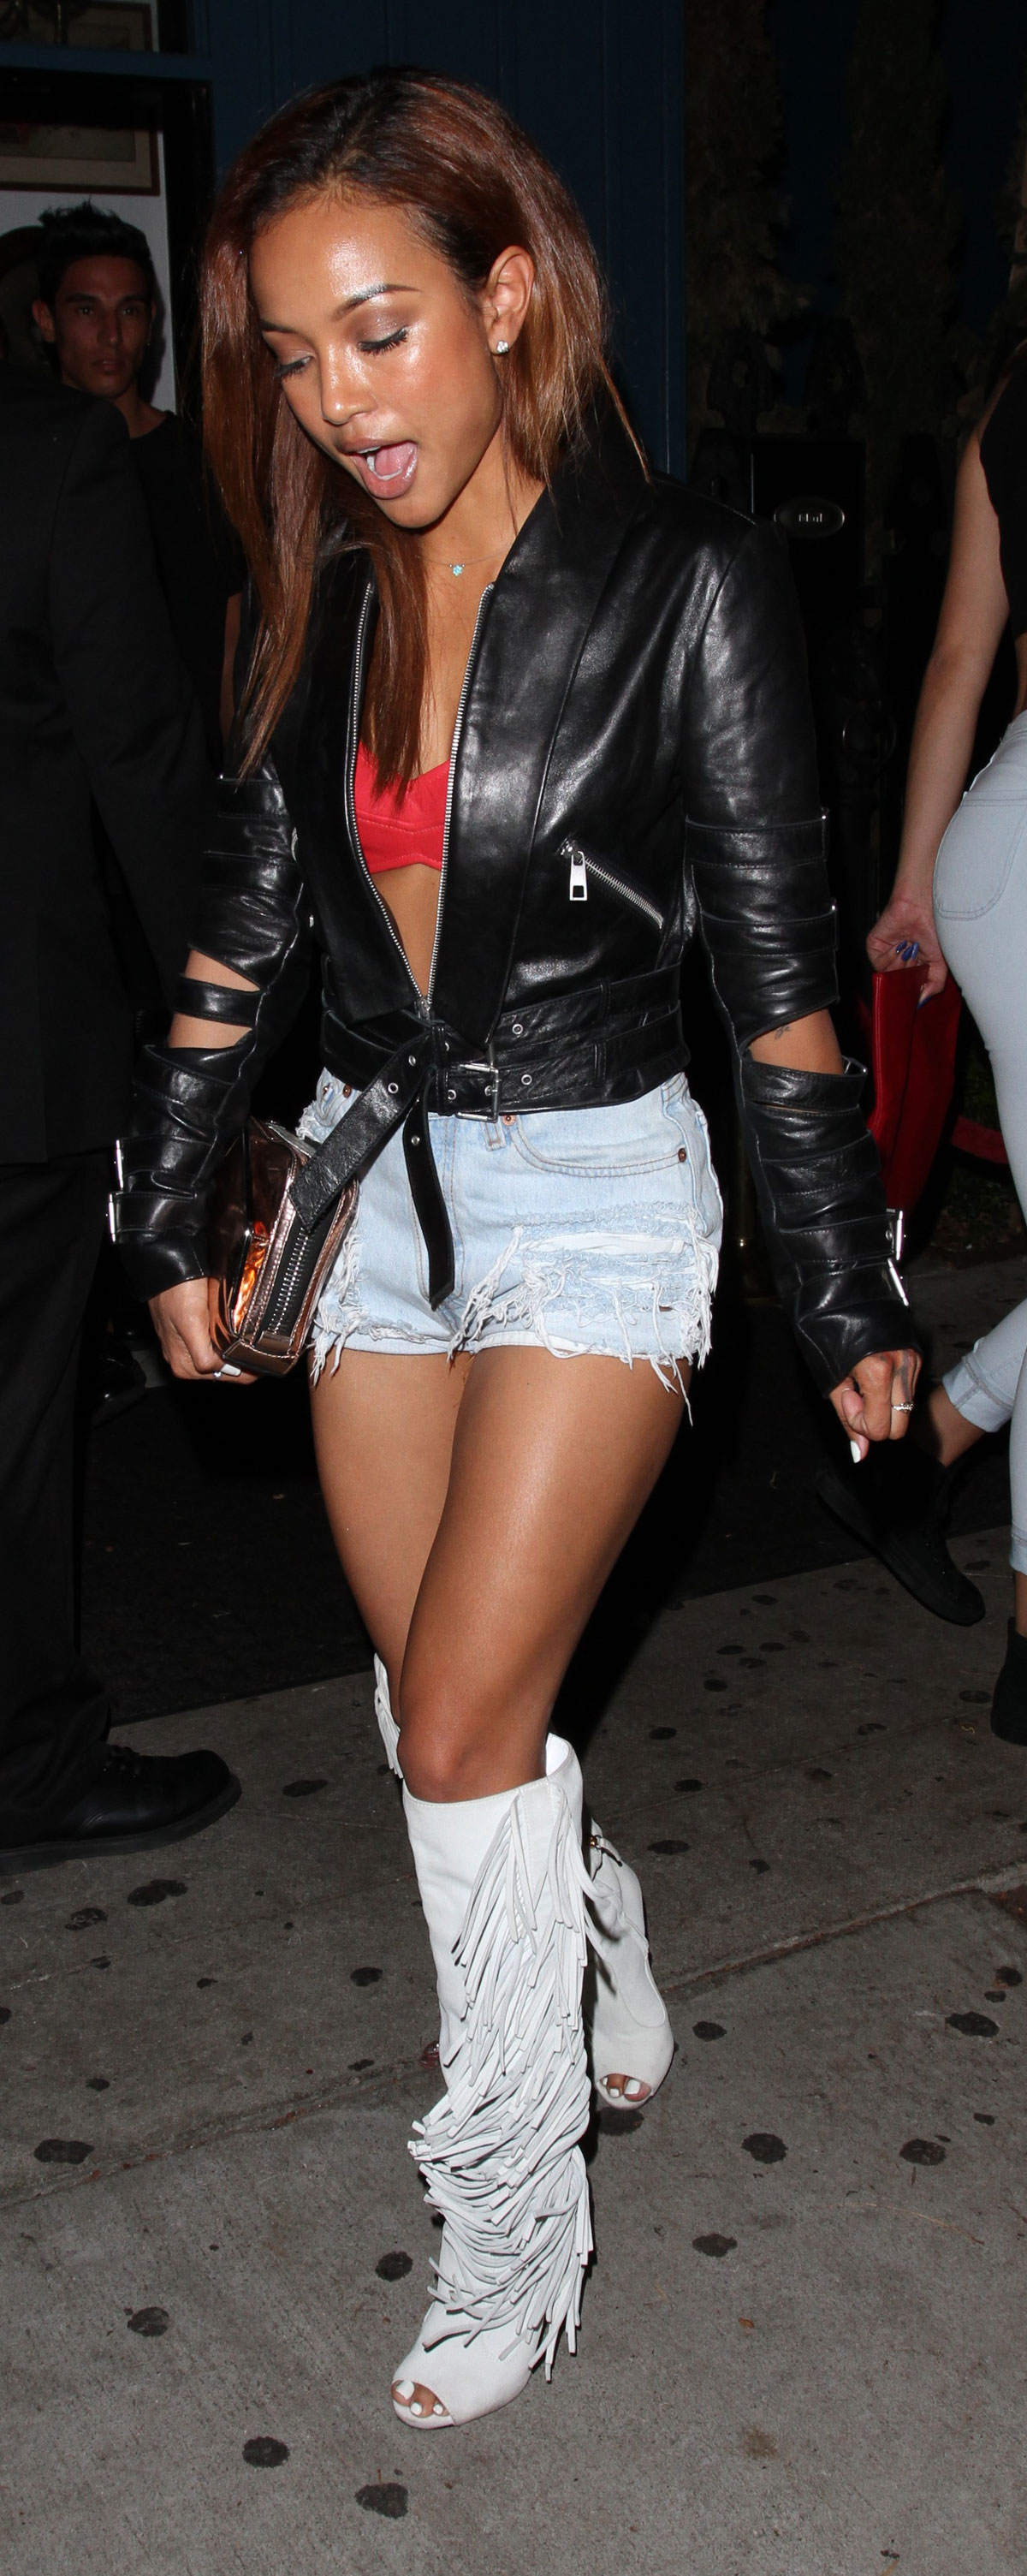 Karruche Tran at Hooray Henry's in West Hollywood